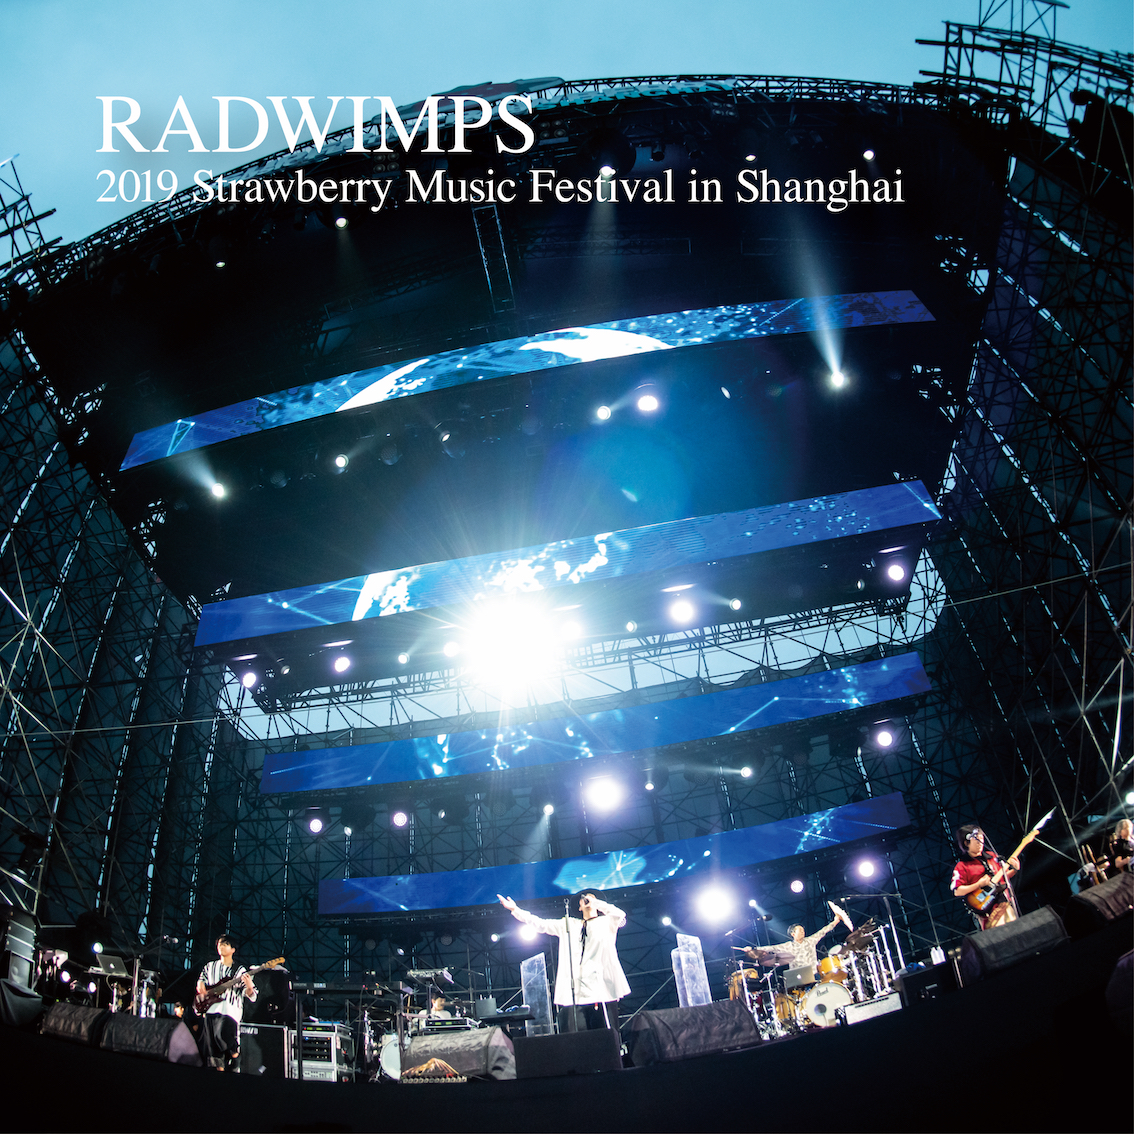 RADWIMPS  2019 Strawberry Music Festival in Shanghai